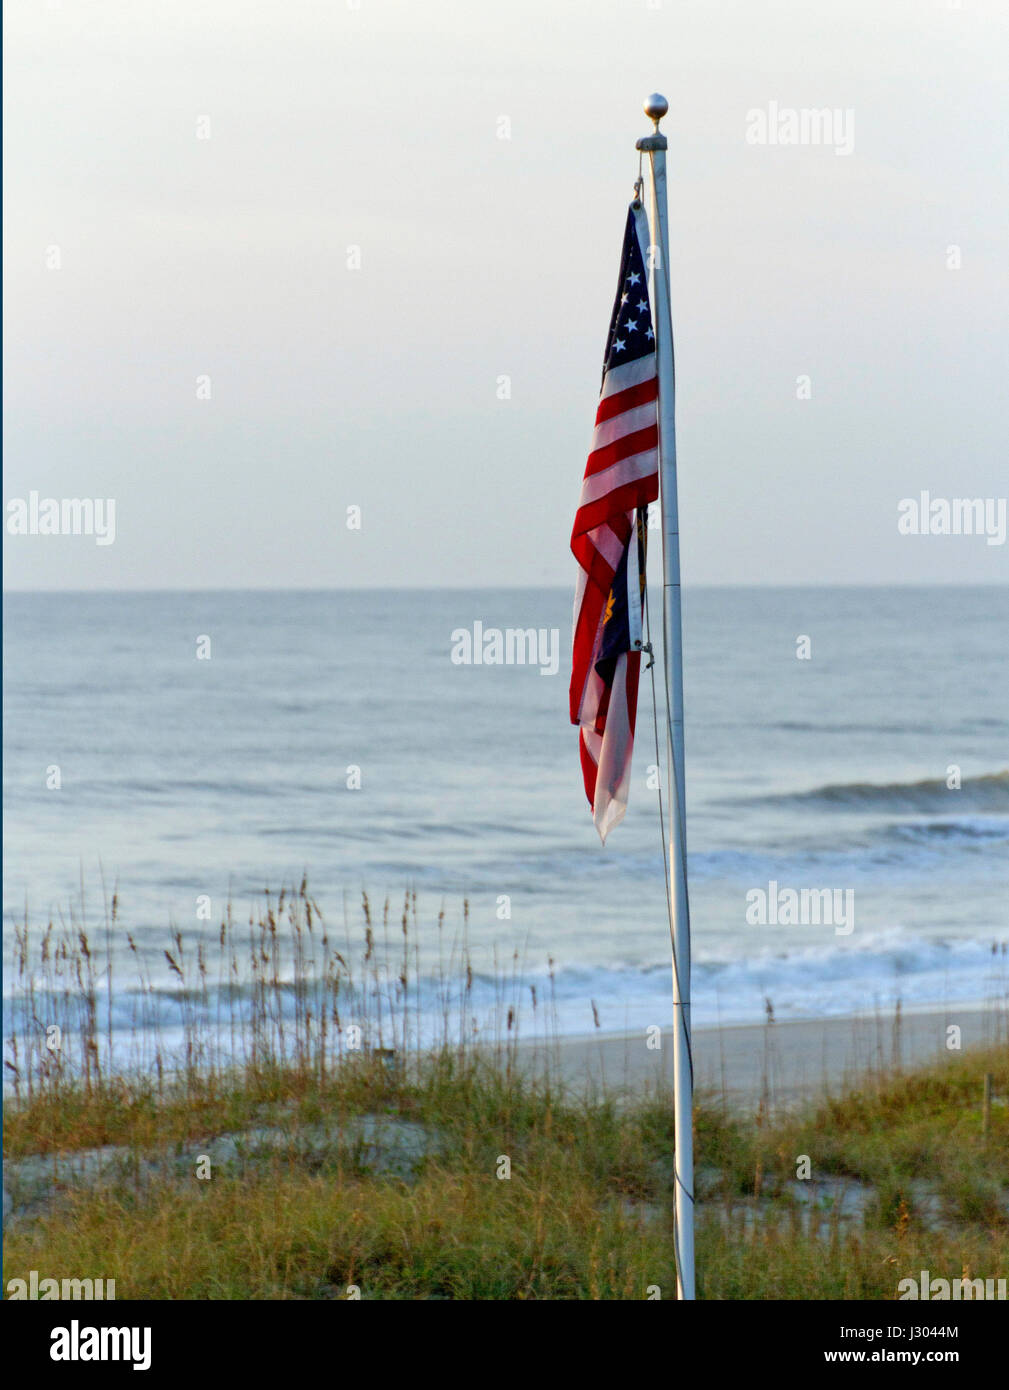 A deflated American flag hanging limply on a stiff flagpole by a dispirited seeming and dull looking Shining Sea - Stock Image